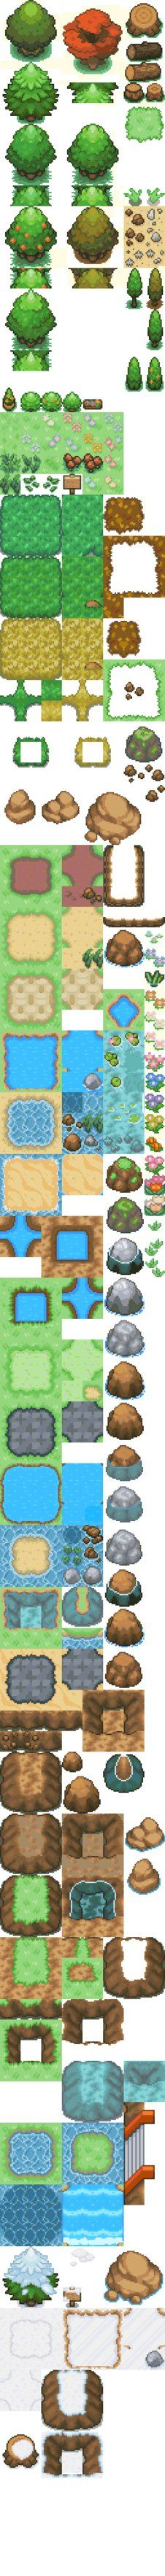 I chose to pin this because i really love the pixel art for this tile set and would be great to take ideas from this for my game